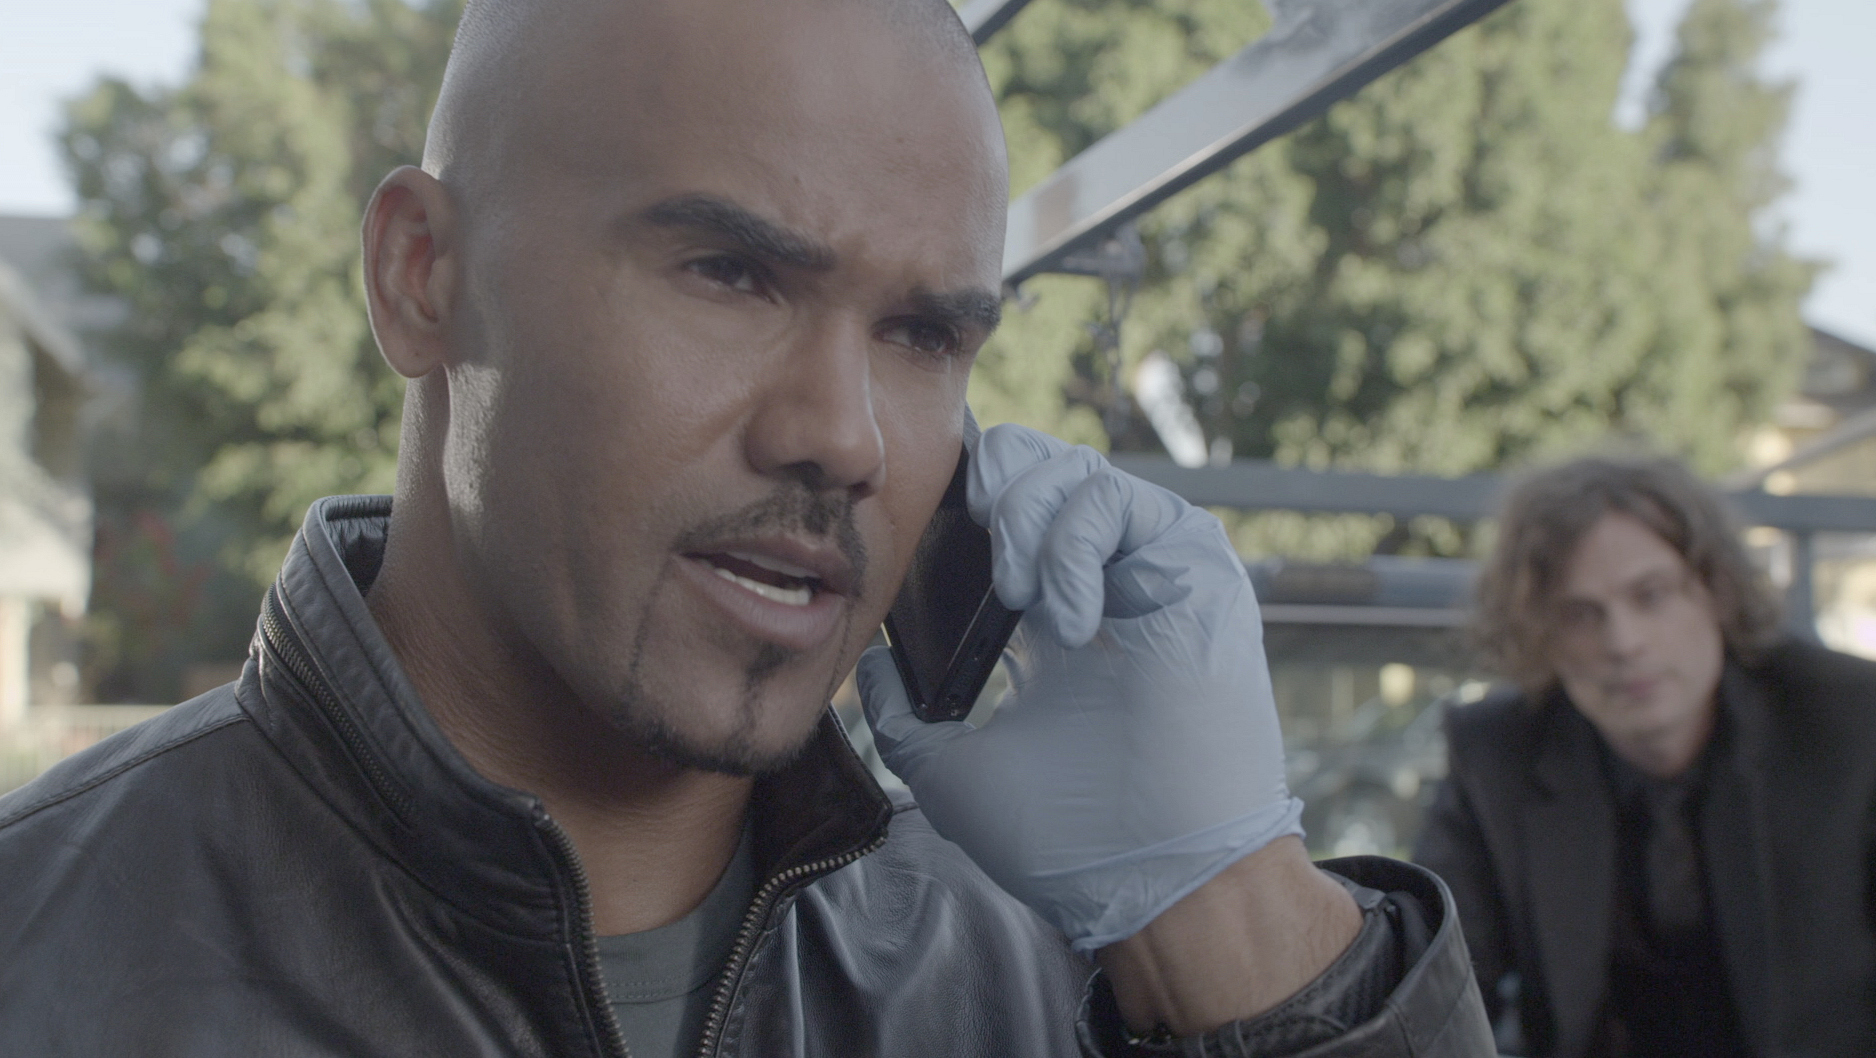 It's Shemar Moore, who plays Derek Morgan on Criminal Minds!